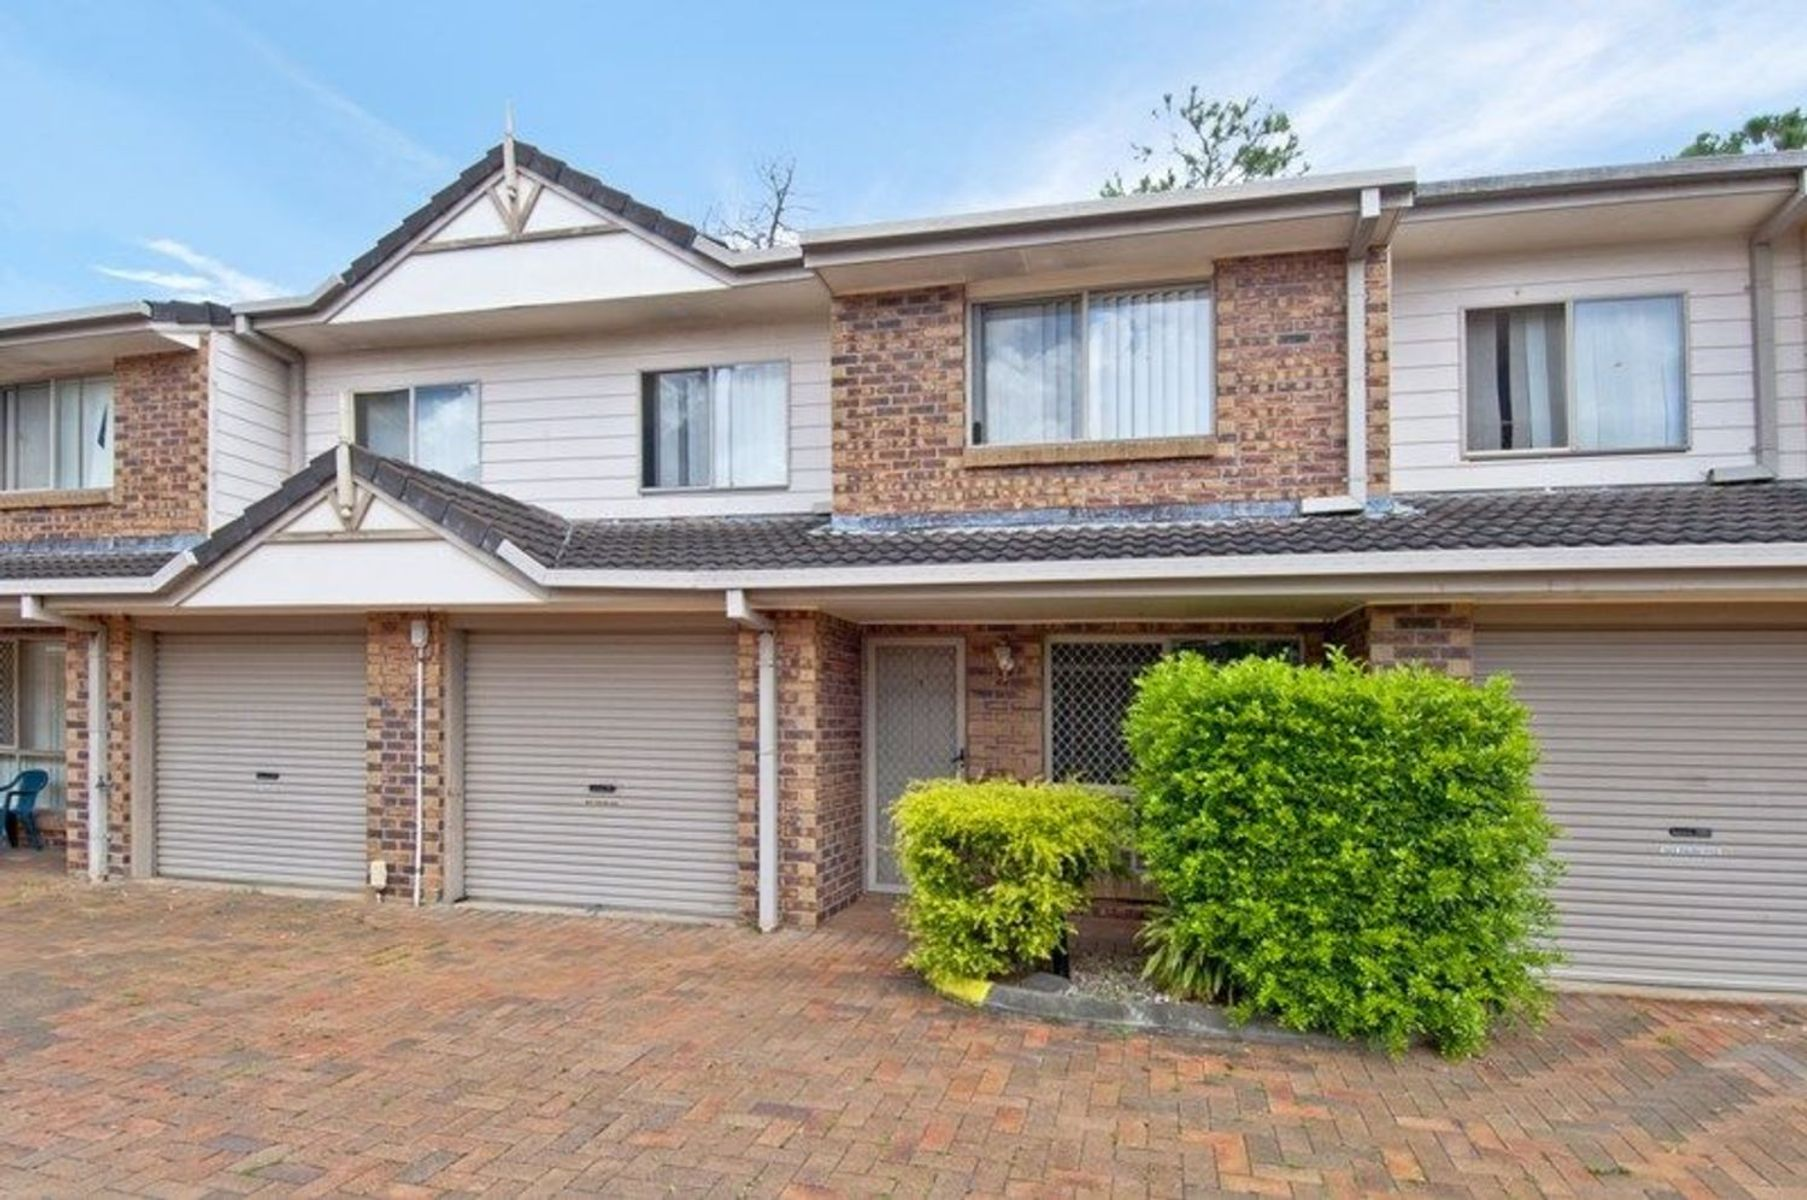 15/32 Chambers Flat Road, Waterford West, QLD 4133